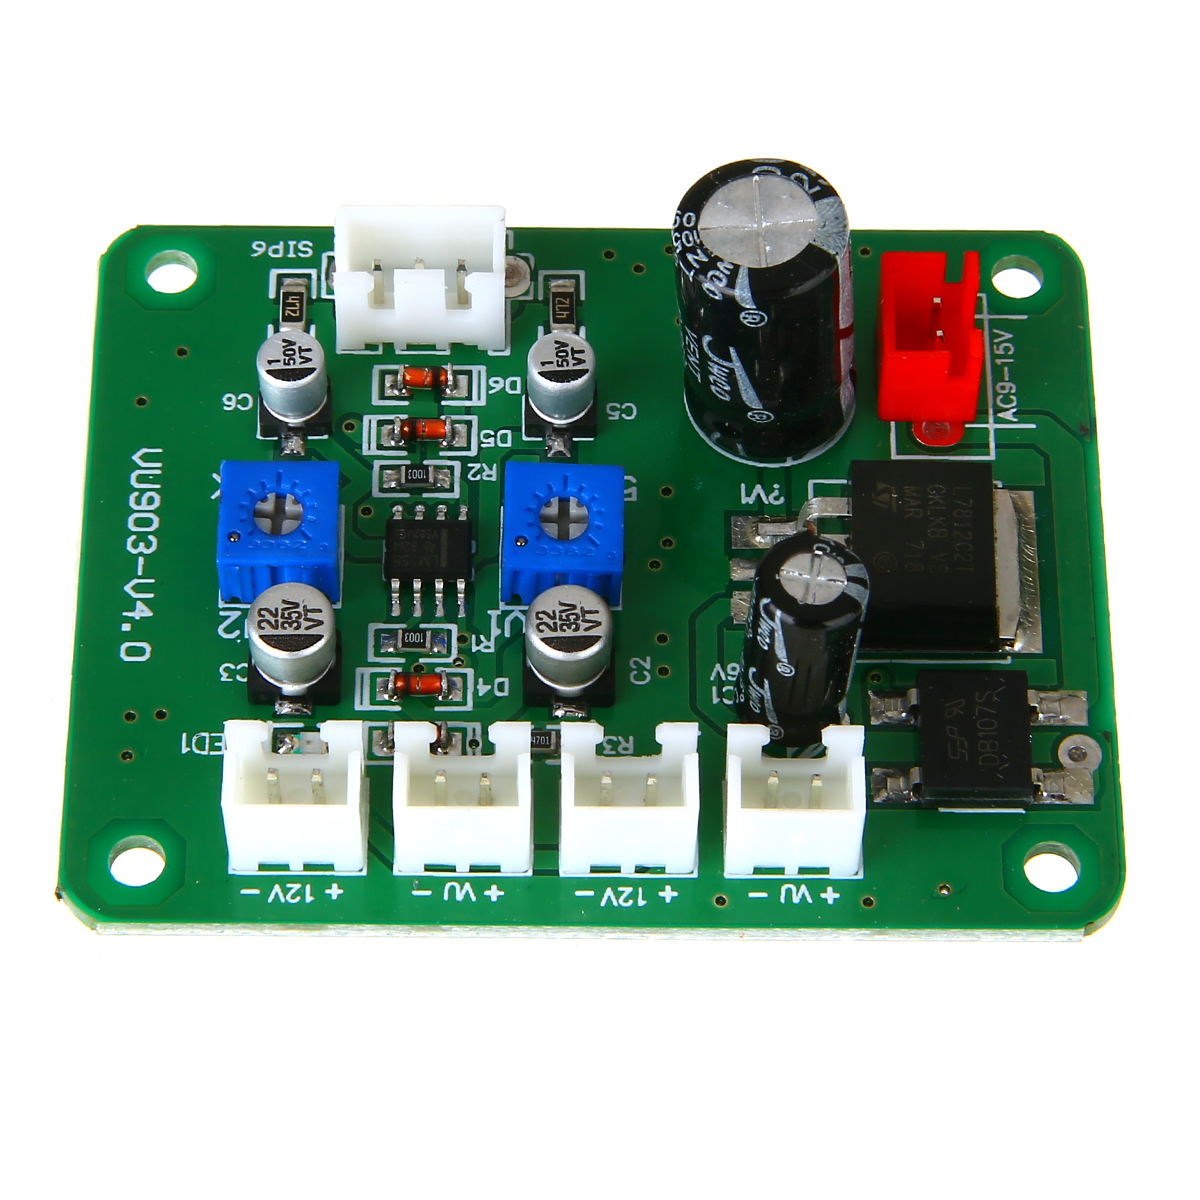 2pcs Mayitr 10 12v Analog Vu Panel Meter Regulator 500ua Warm Back Circuit Light Recording 1pc Driver Module Cable In Current Meters From Tools On